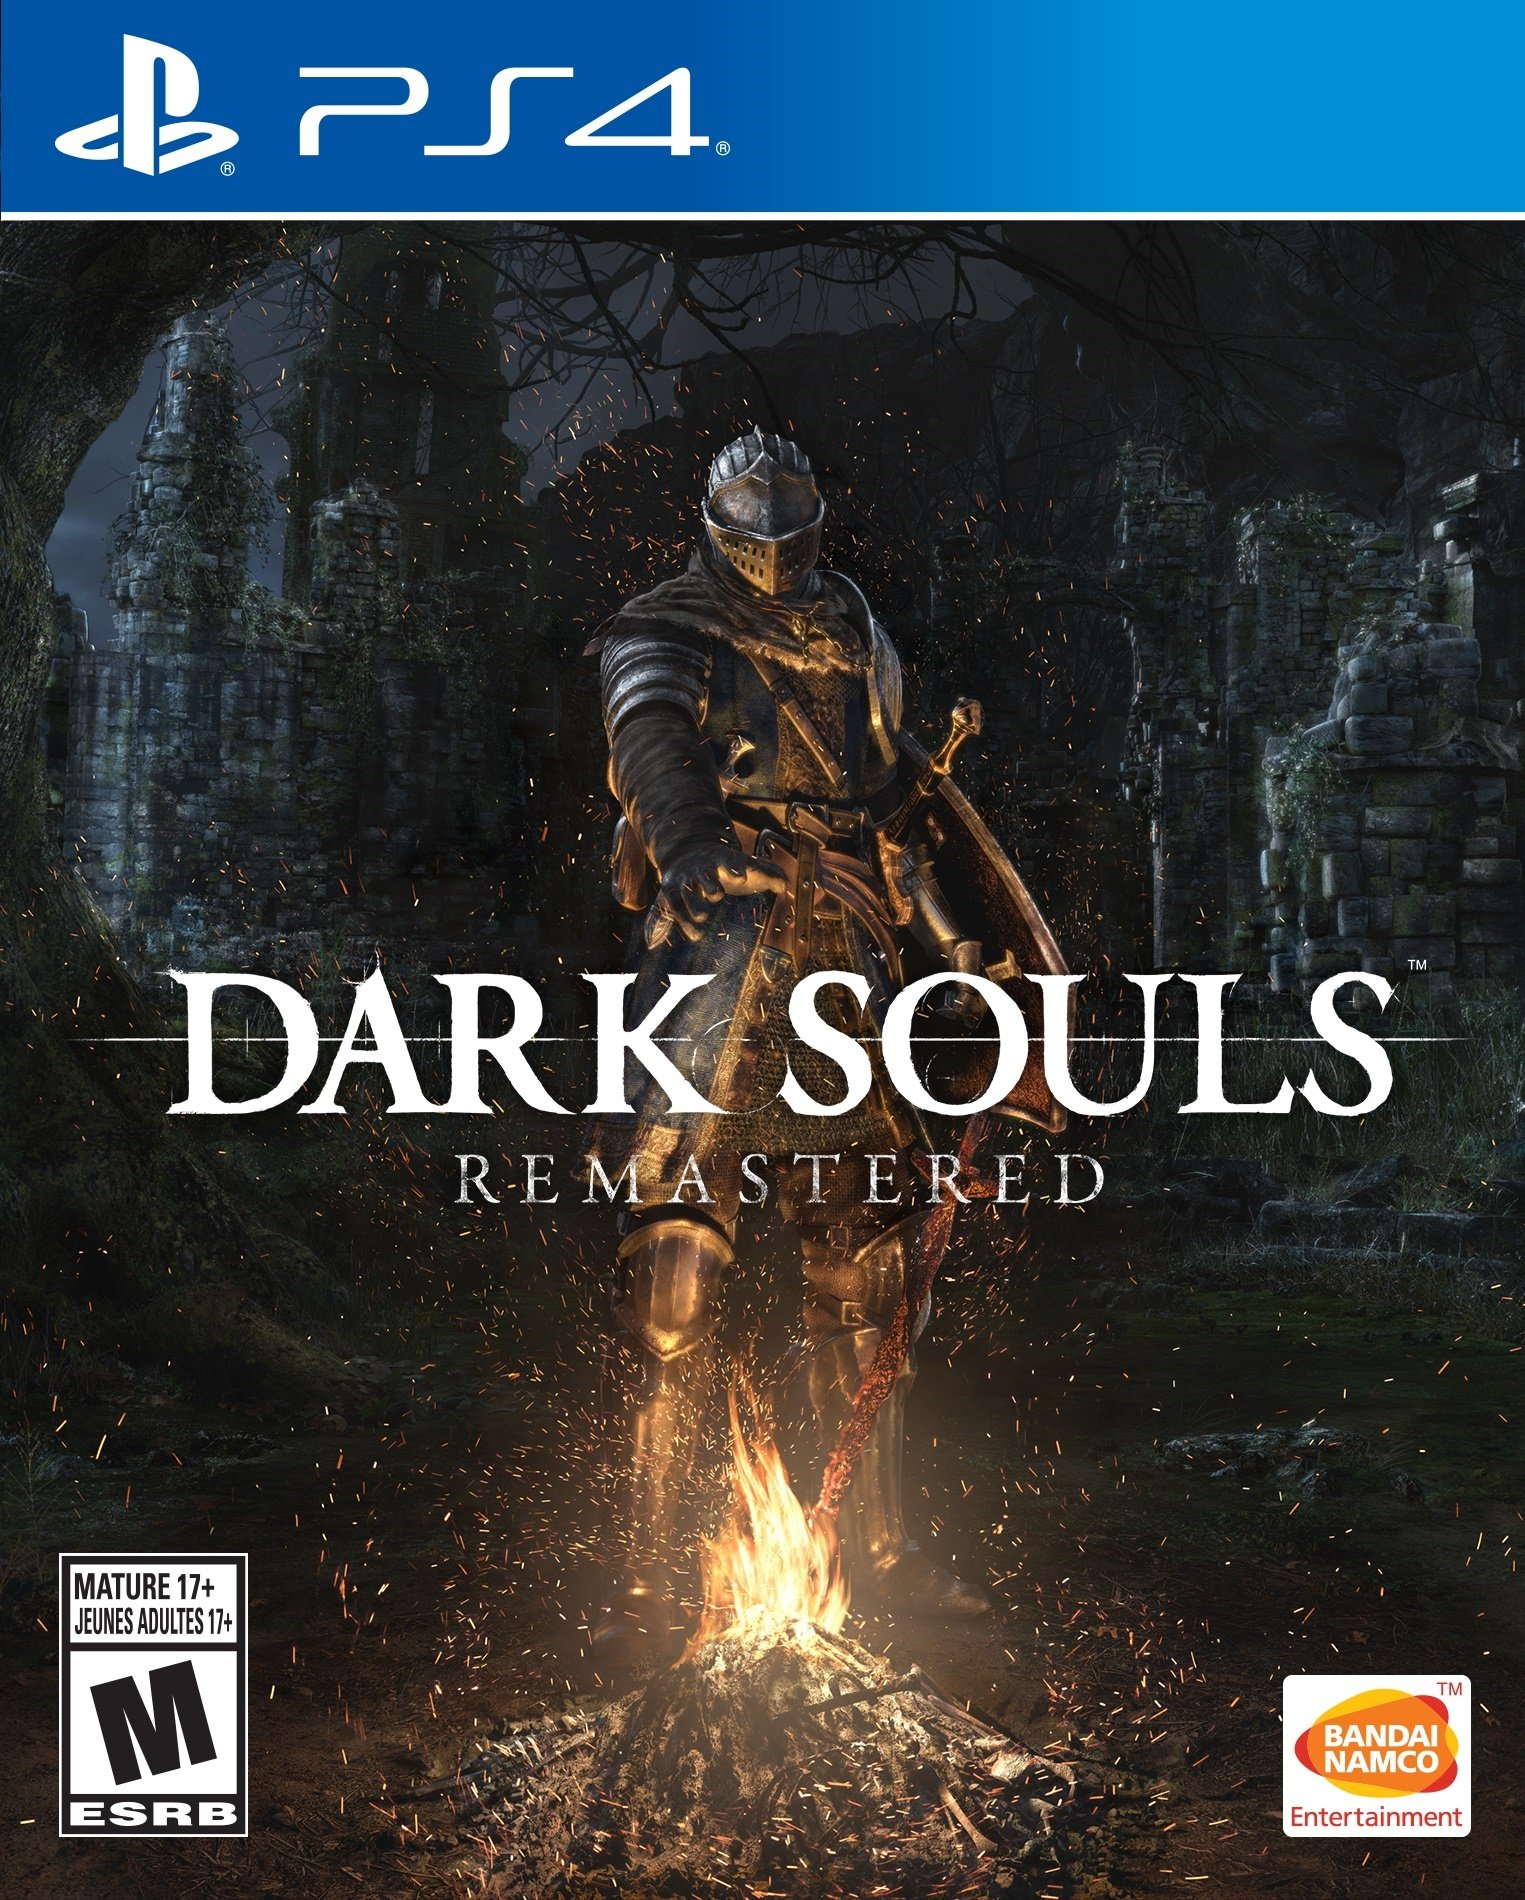 Buy Remastered Dark Souls Now!